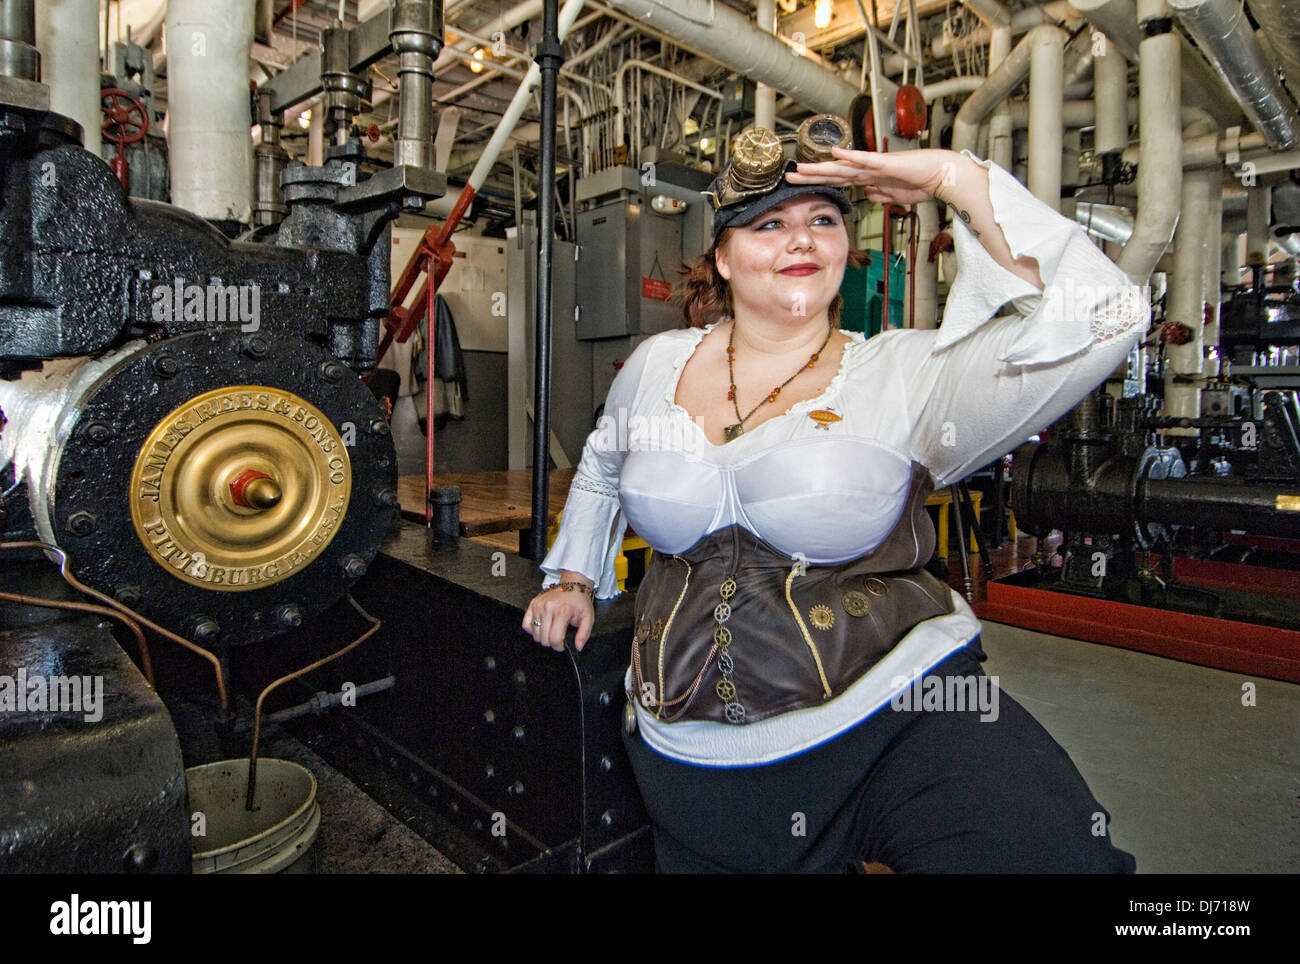 Steampunk Woman Engine Room Boat Control Brass - Stock Image